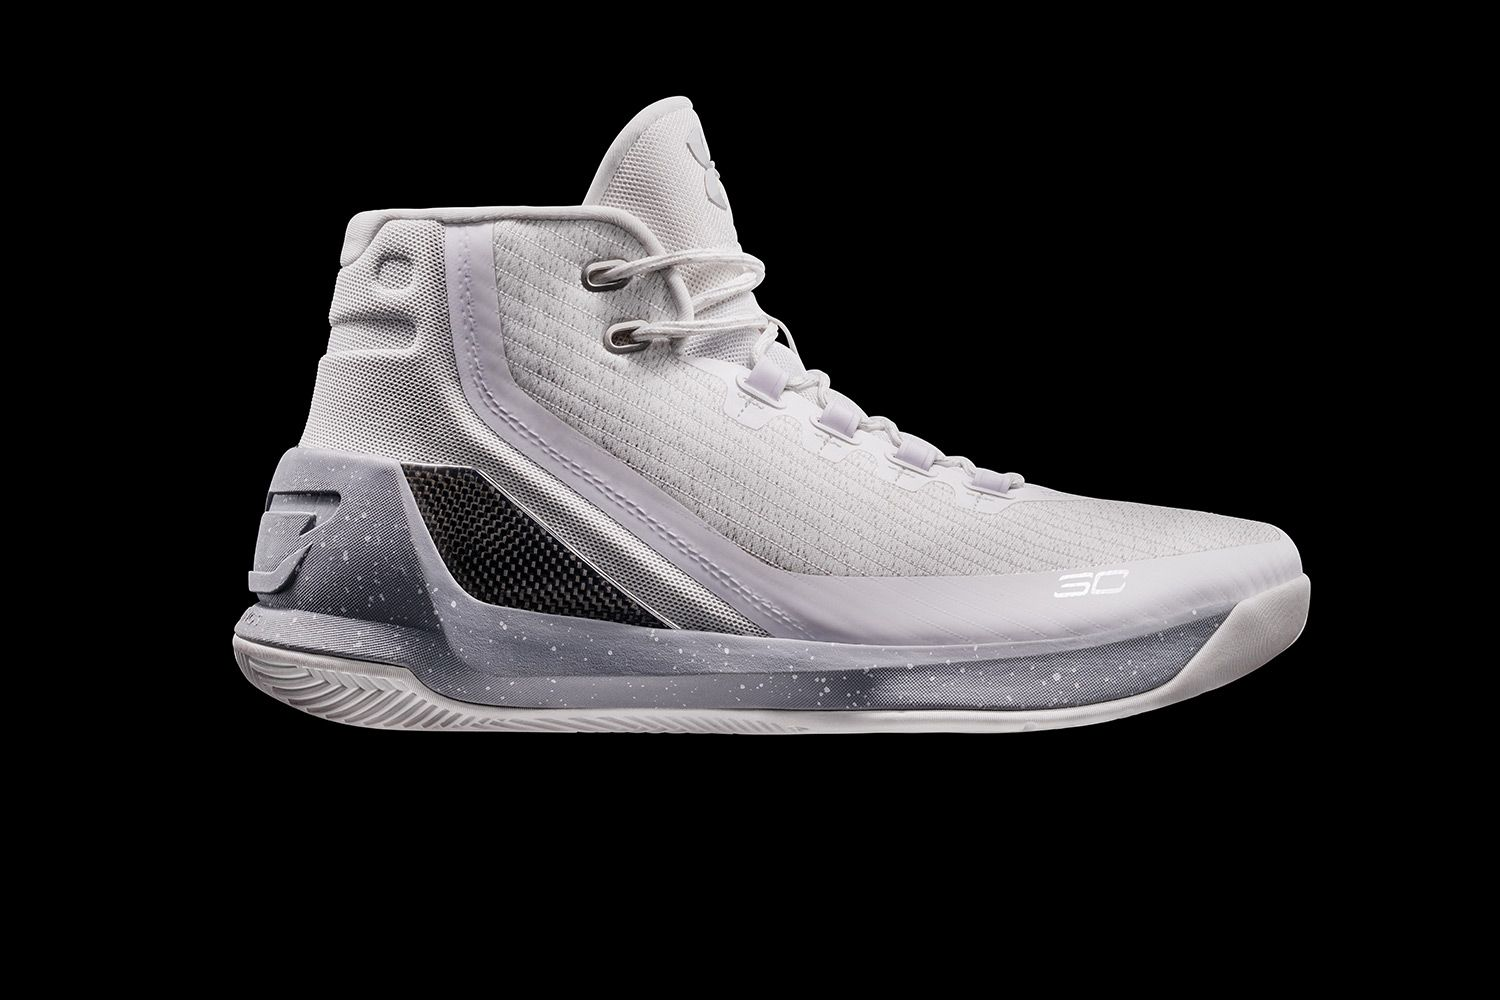 c260f1f7 ... every major sneaker brand is releasing festive colorways, and the latest  to join that lineup is Under Armour with three new colorways of the Curry 3.